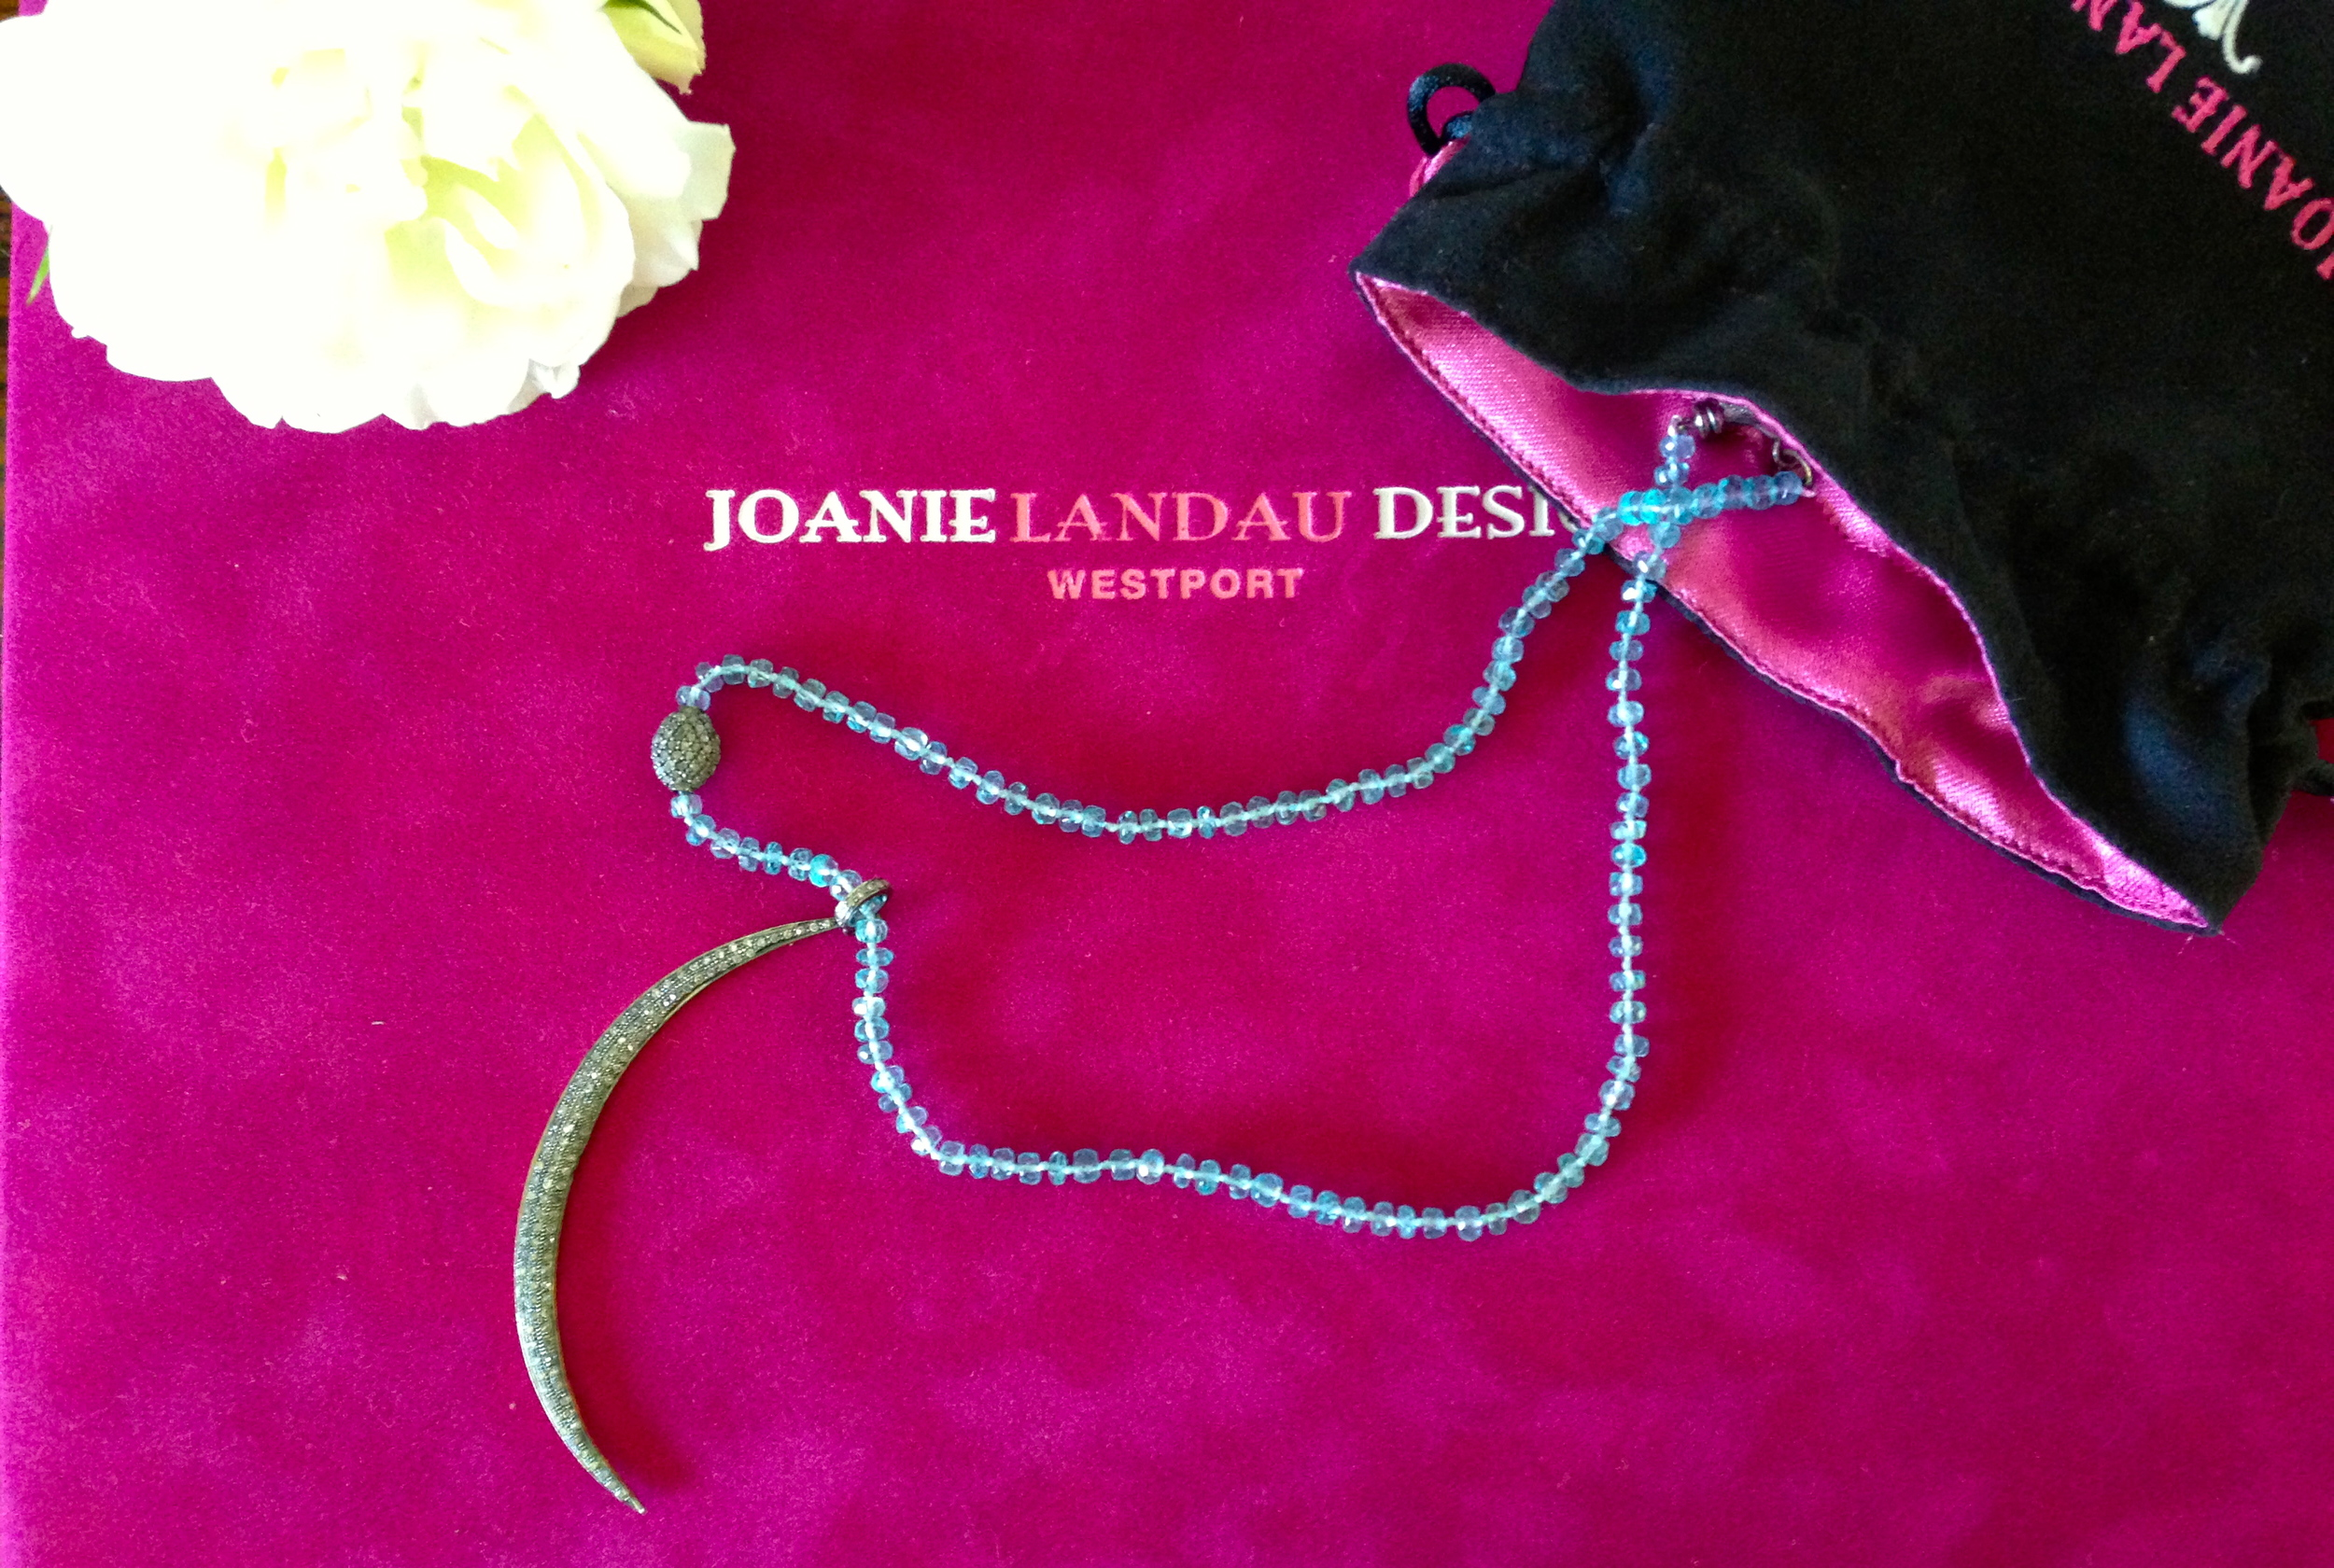 "Joanie Landau Designs, Waning Crescent Moon    Pave` Diamond Moon (3"" L) set in Blackened Silver, Backed in Gold Plate with Diamond Bail, on a strand of 3mm Faceted Apatite or Moonstone Rondelles, Off-Center Pave` Diamond Oval, Diamond Lobster Claw & End Tag. 16"" L with 2"" Extender Chain. $1428"